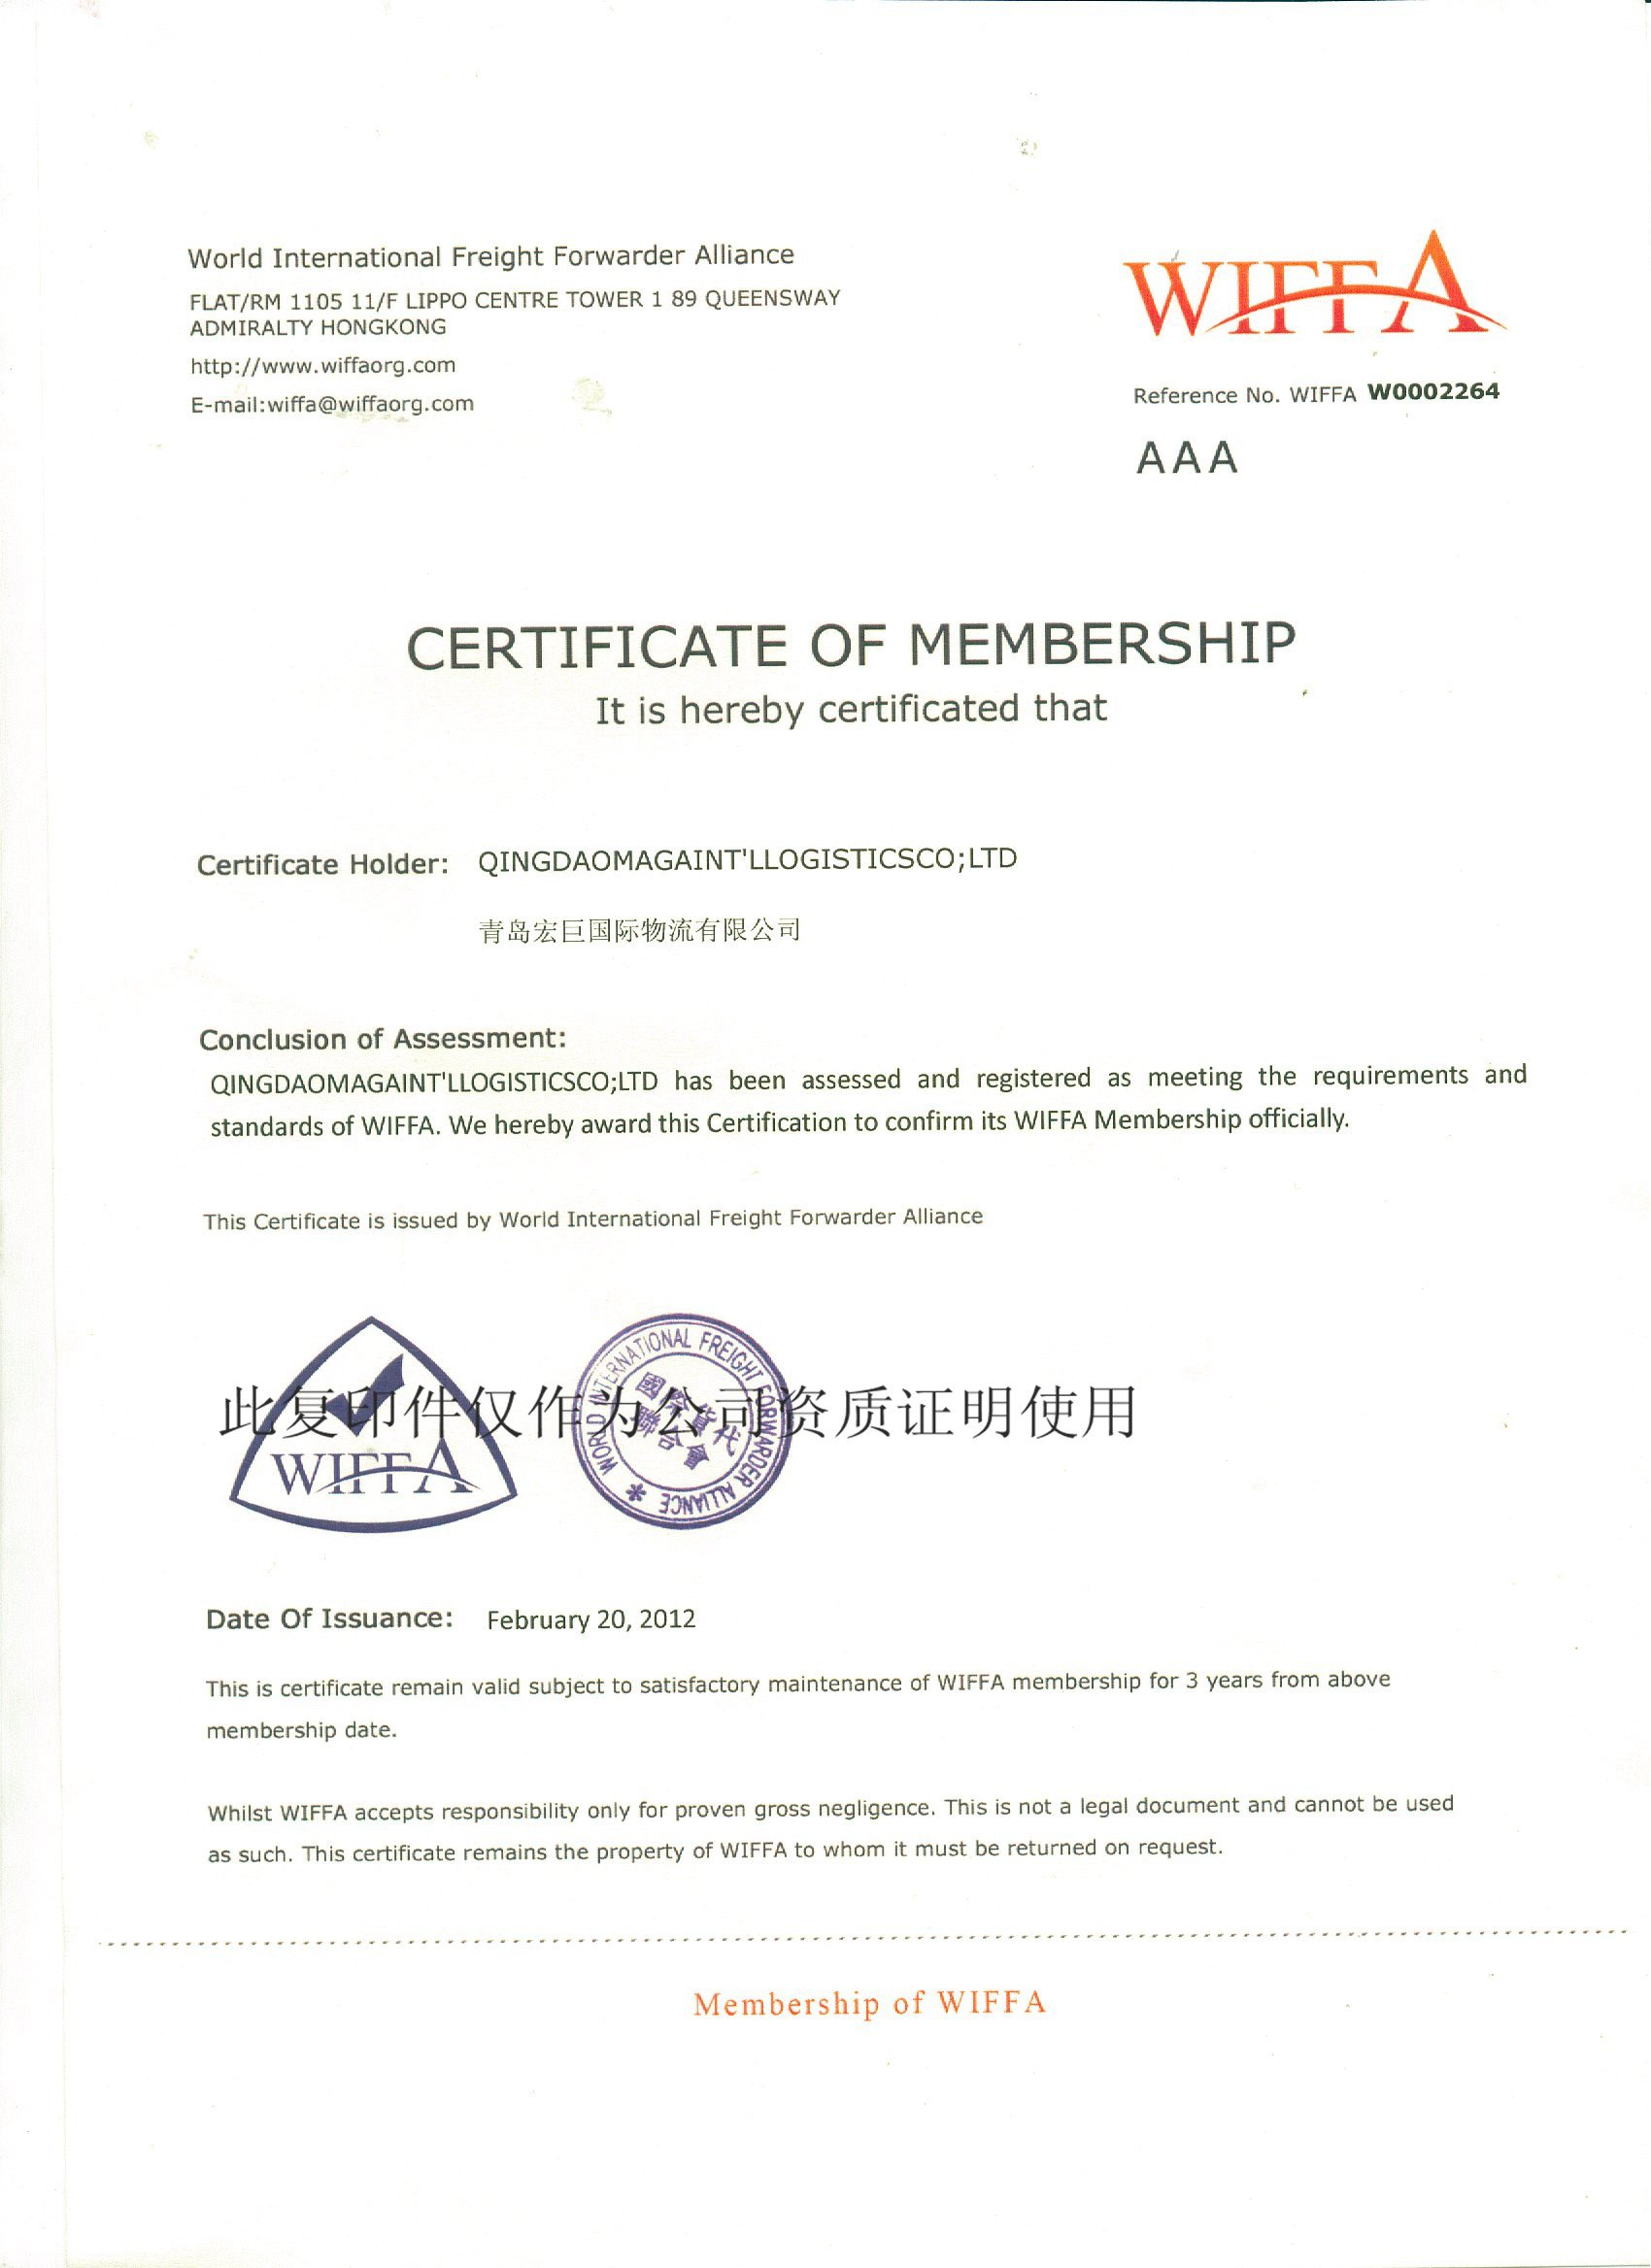 International freight forwarder league certificate